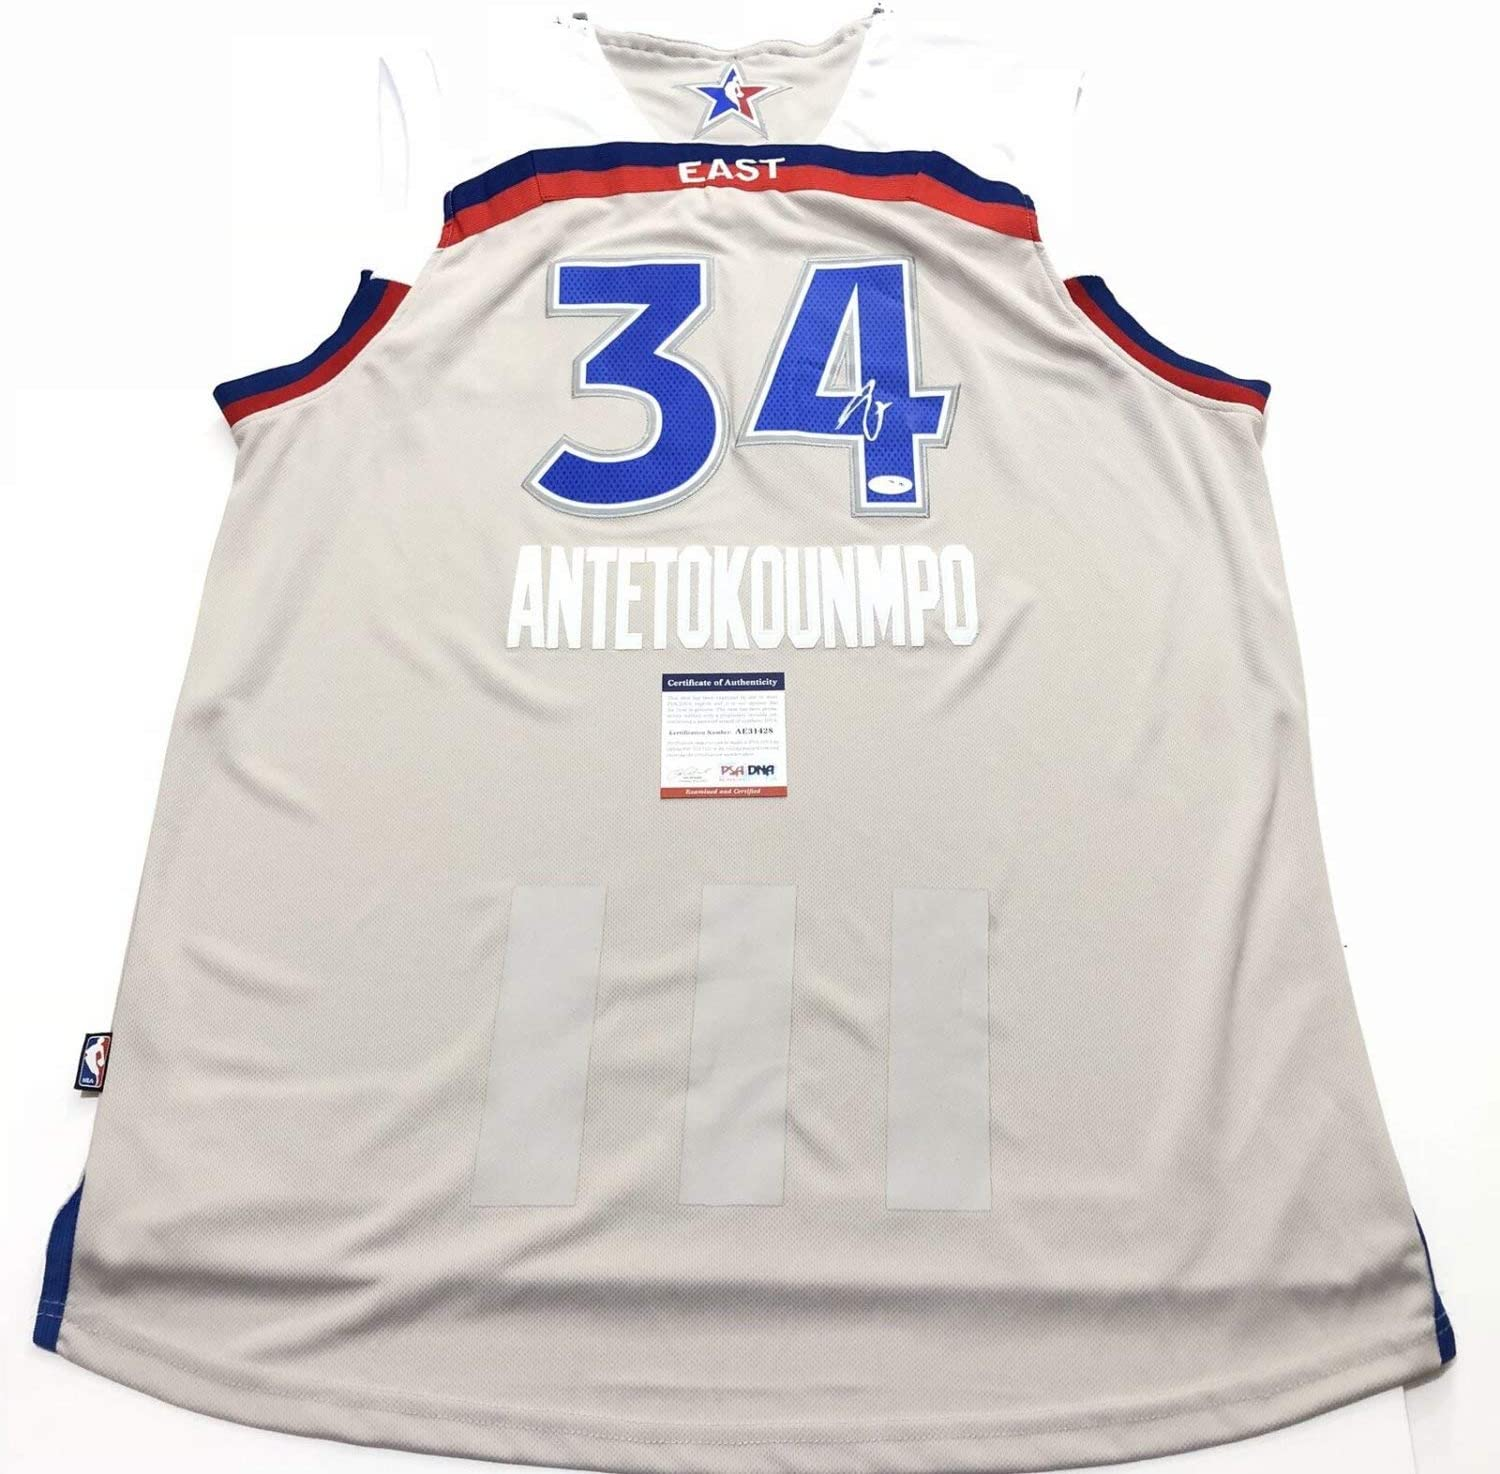 Giannis Antetokounmpo Autographed Signed Jersey PSA/DNA Milwaukee Bucks Autographed All Star